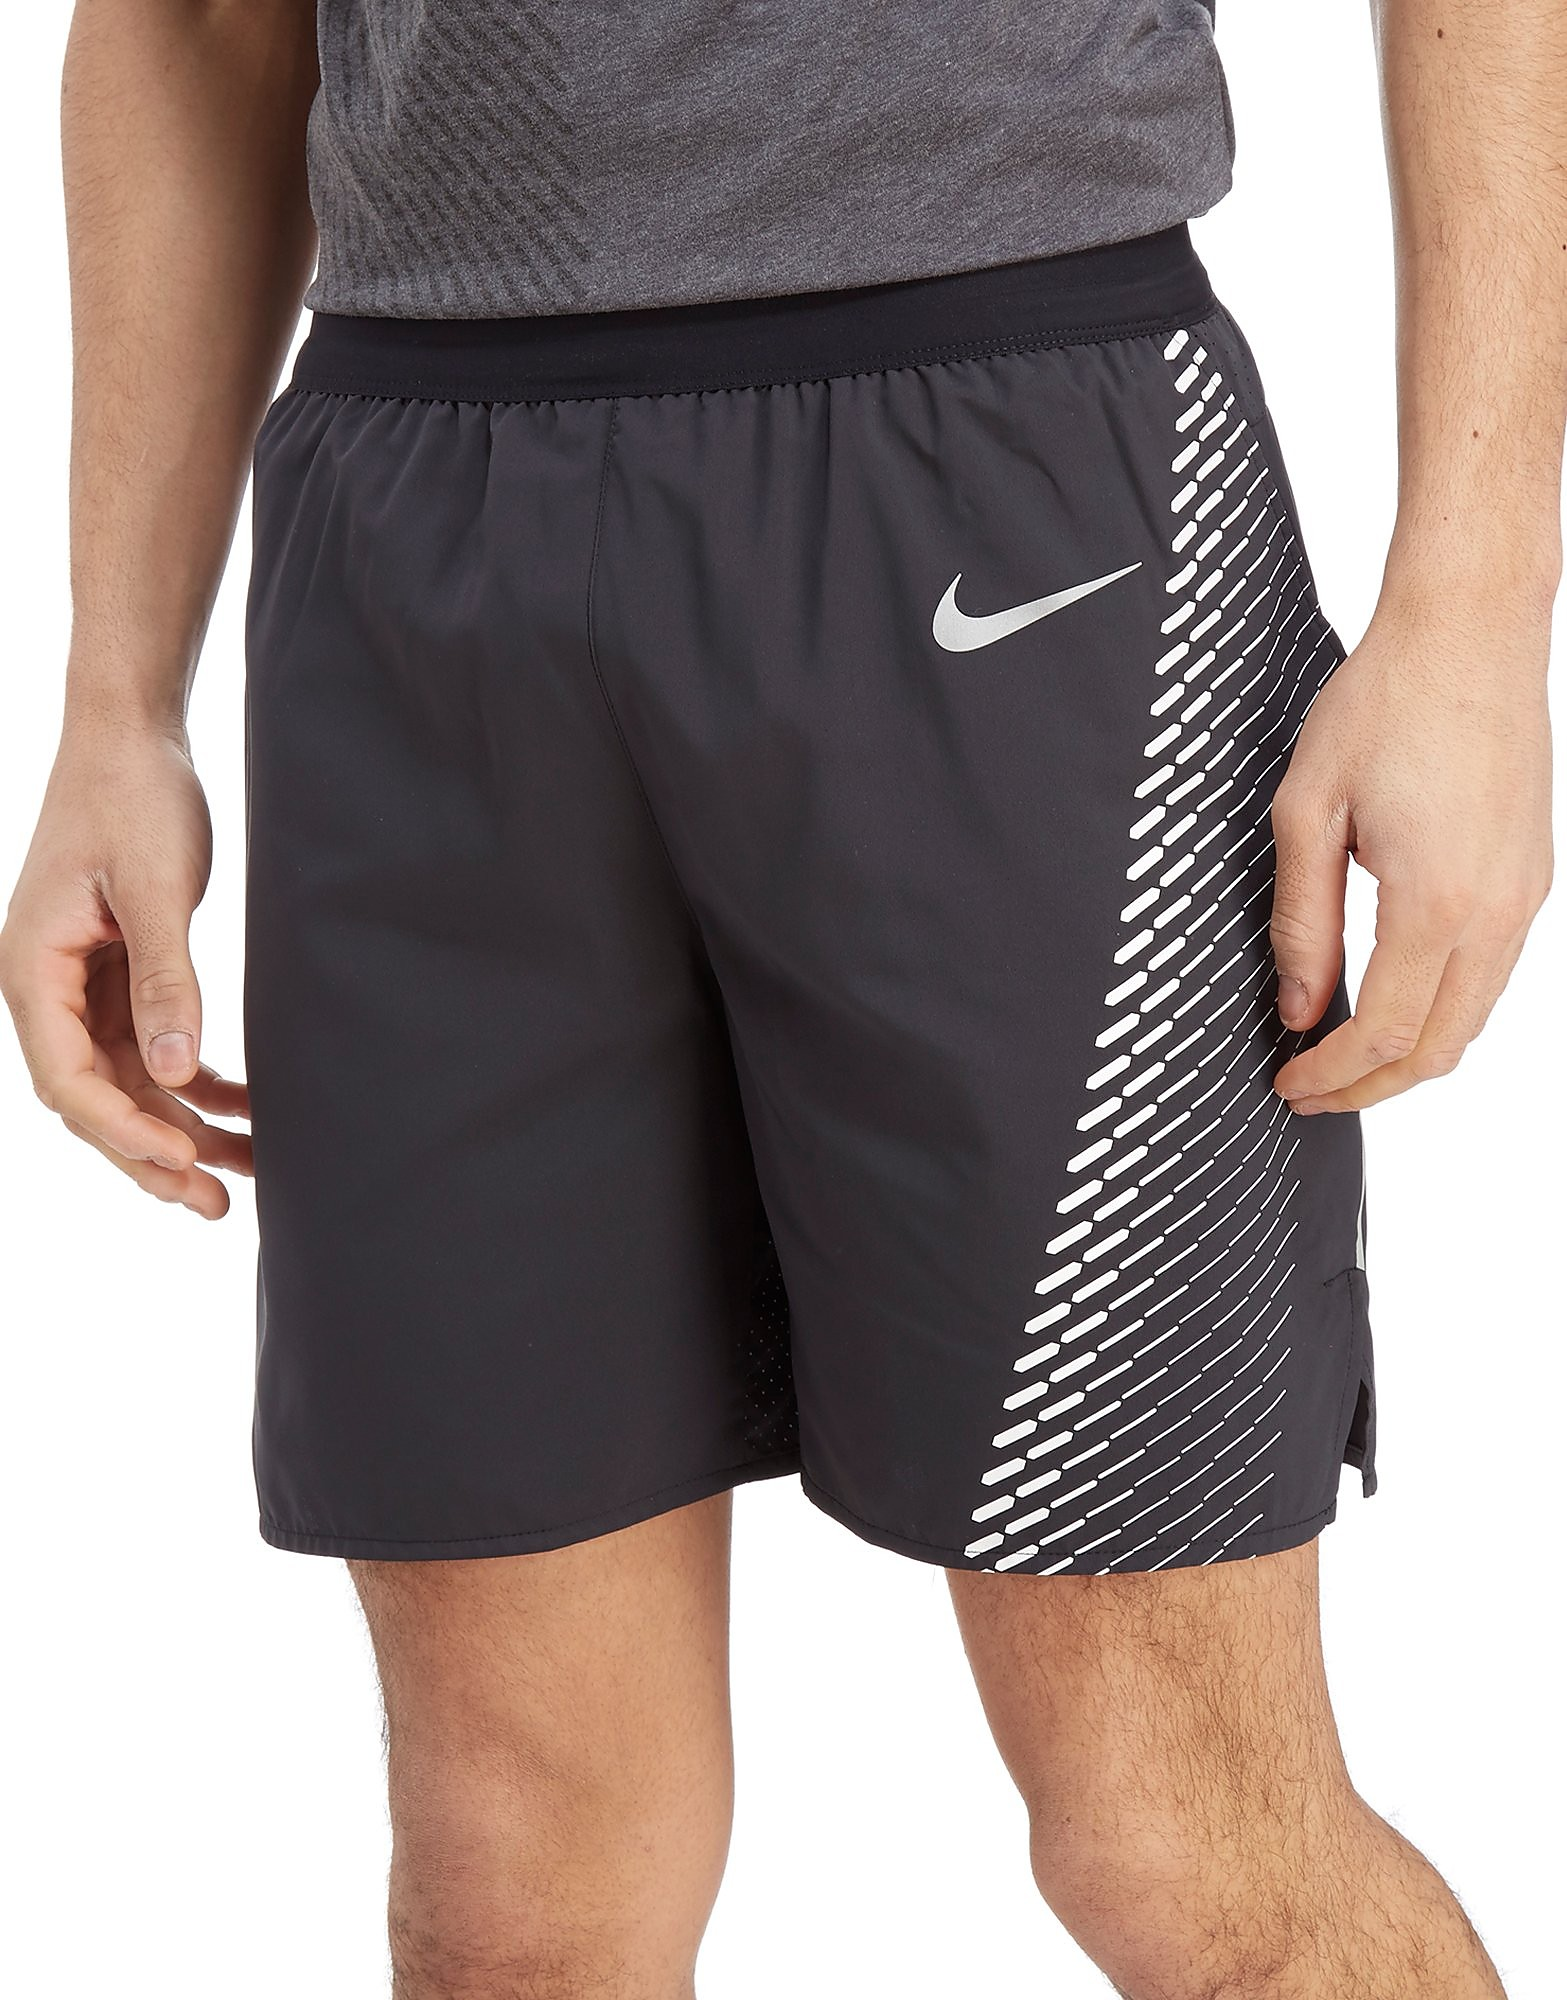 Nike Short Distance Homme